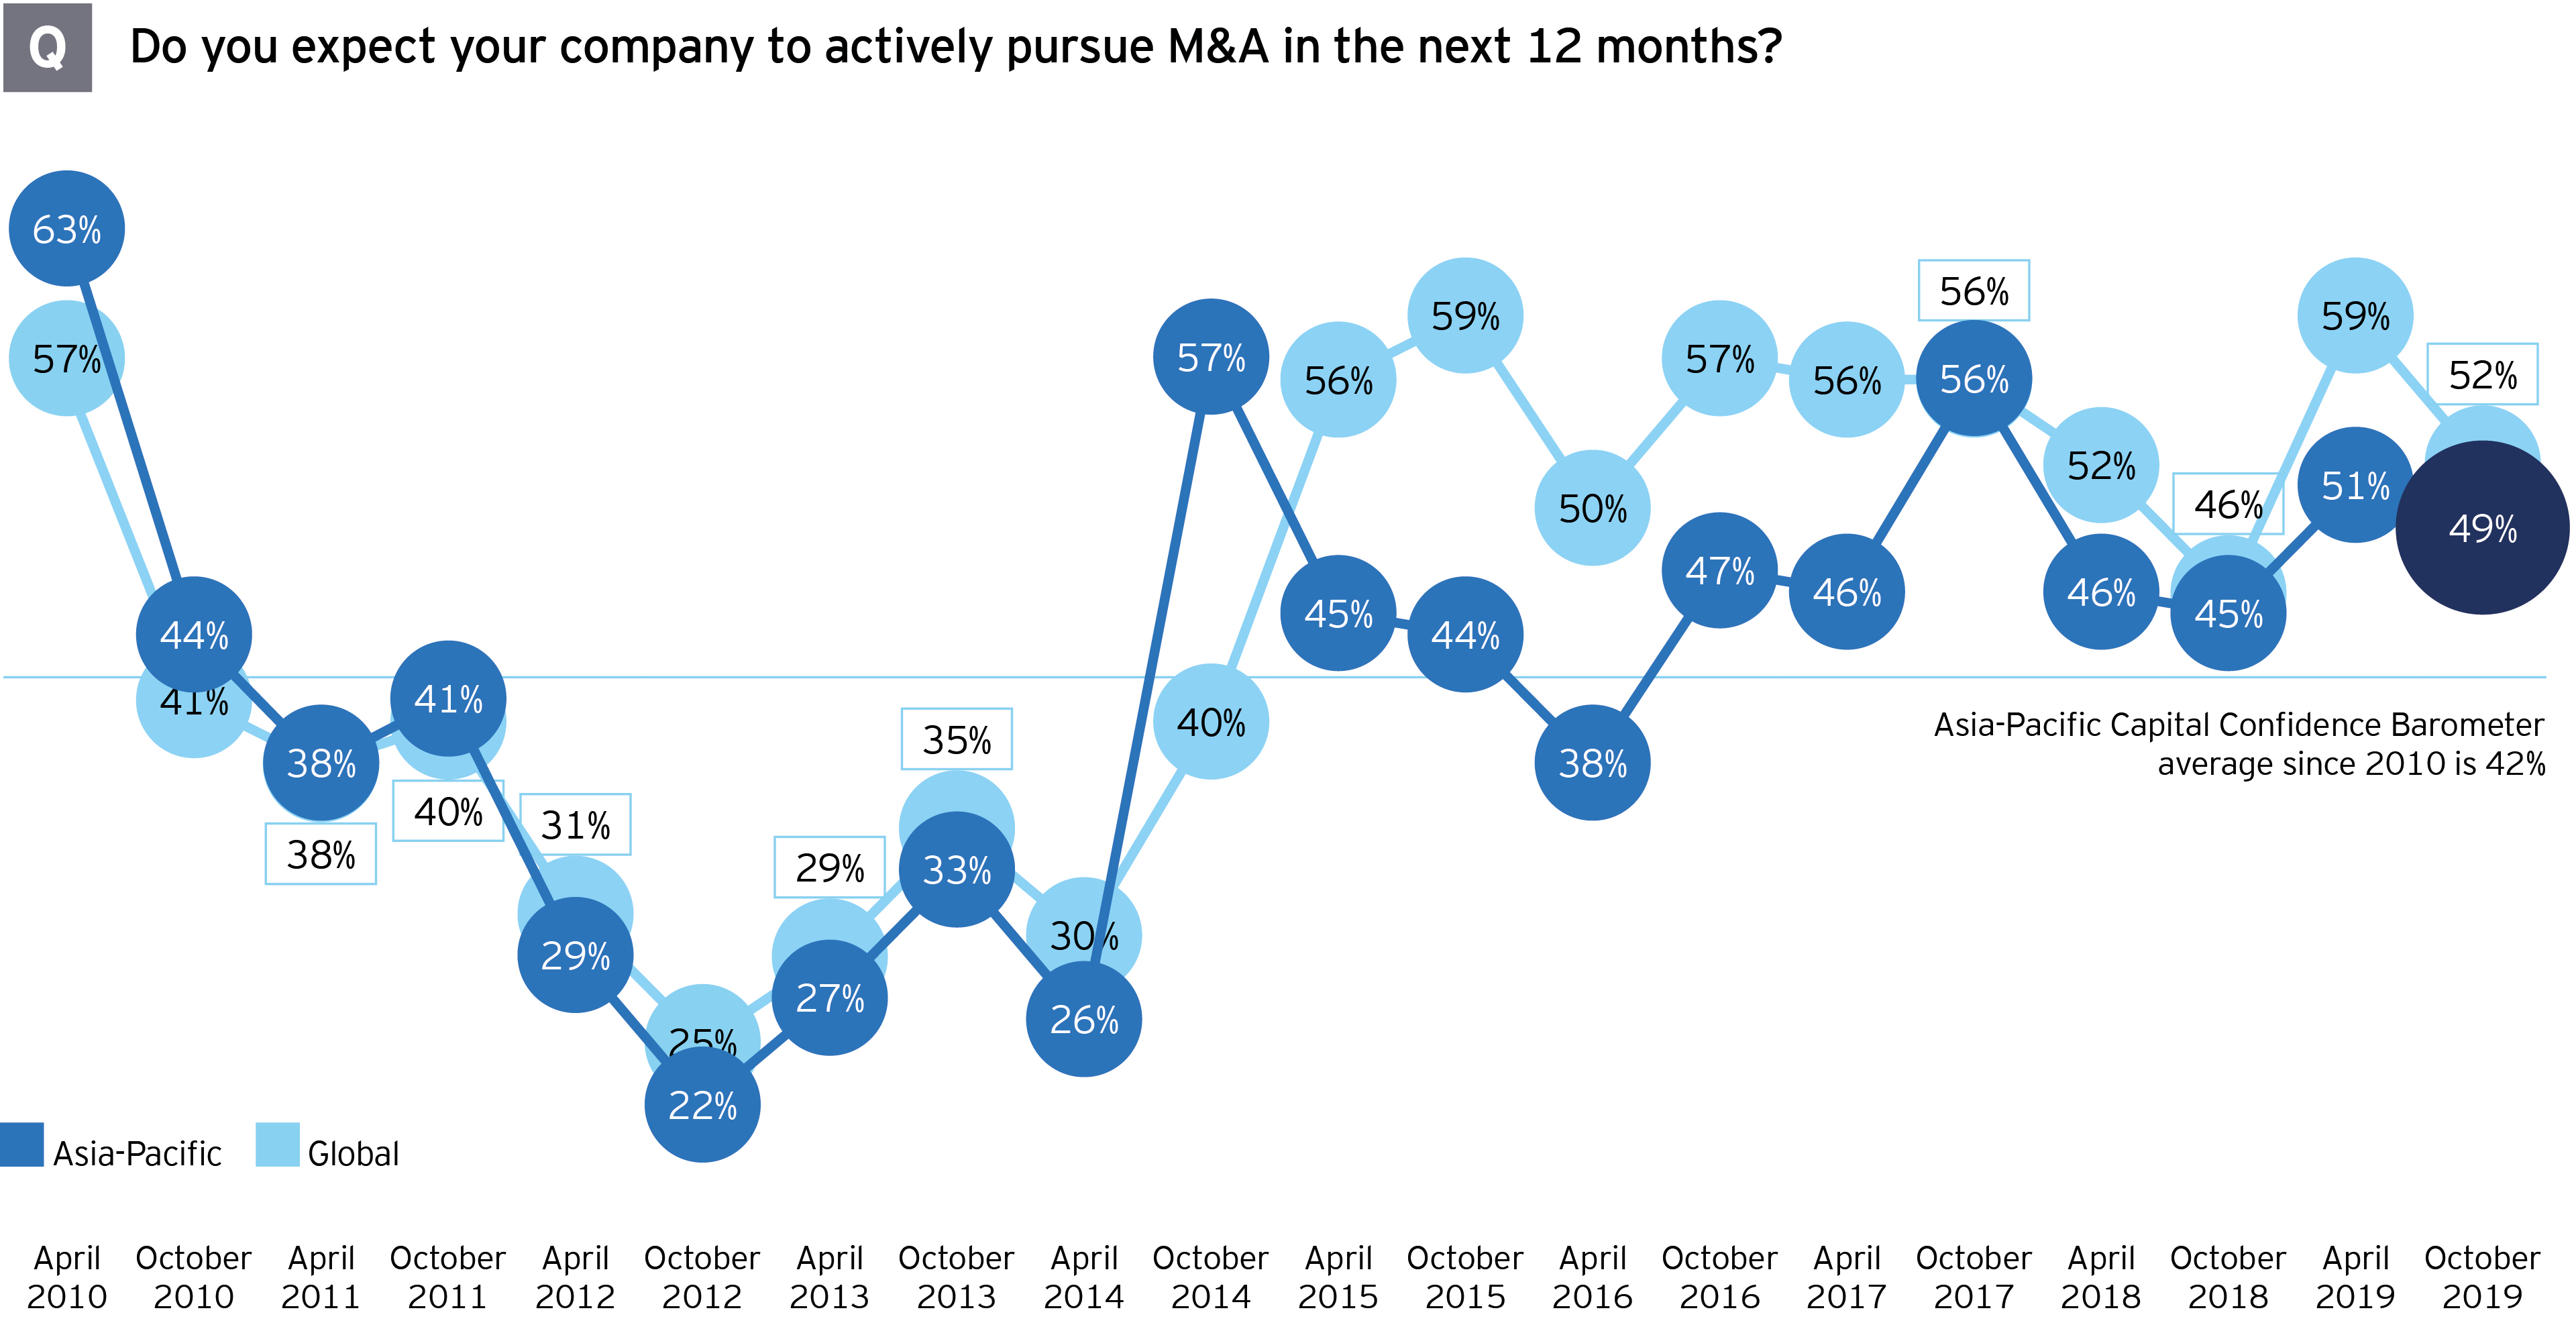 APAC actively pursue M&A in next 12 months graph